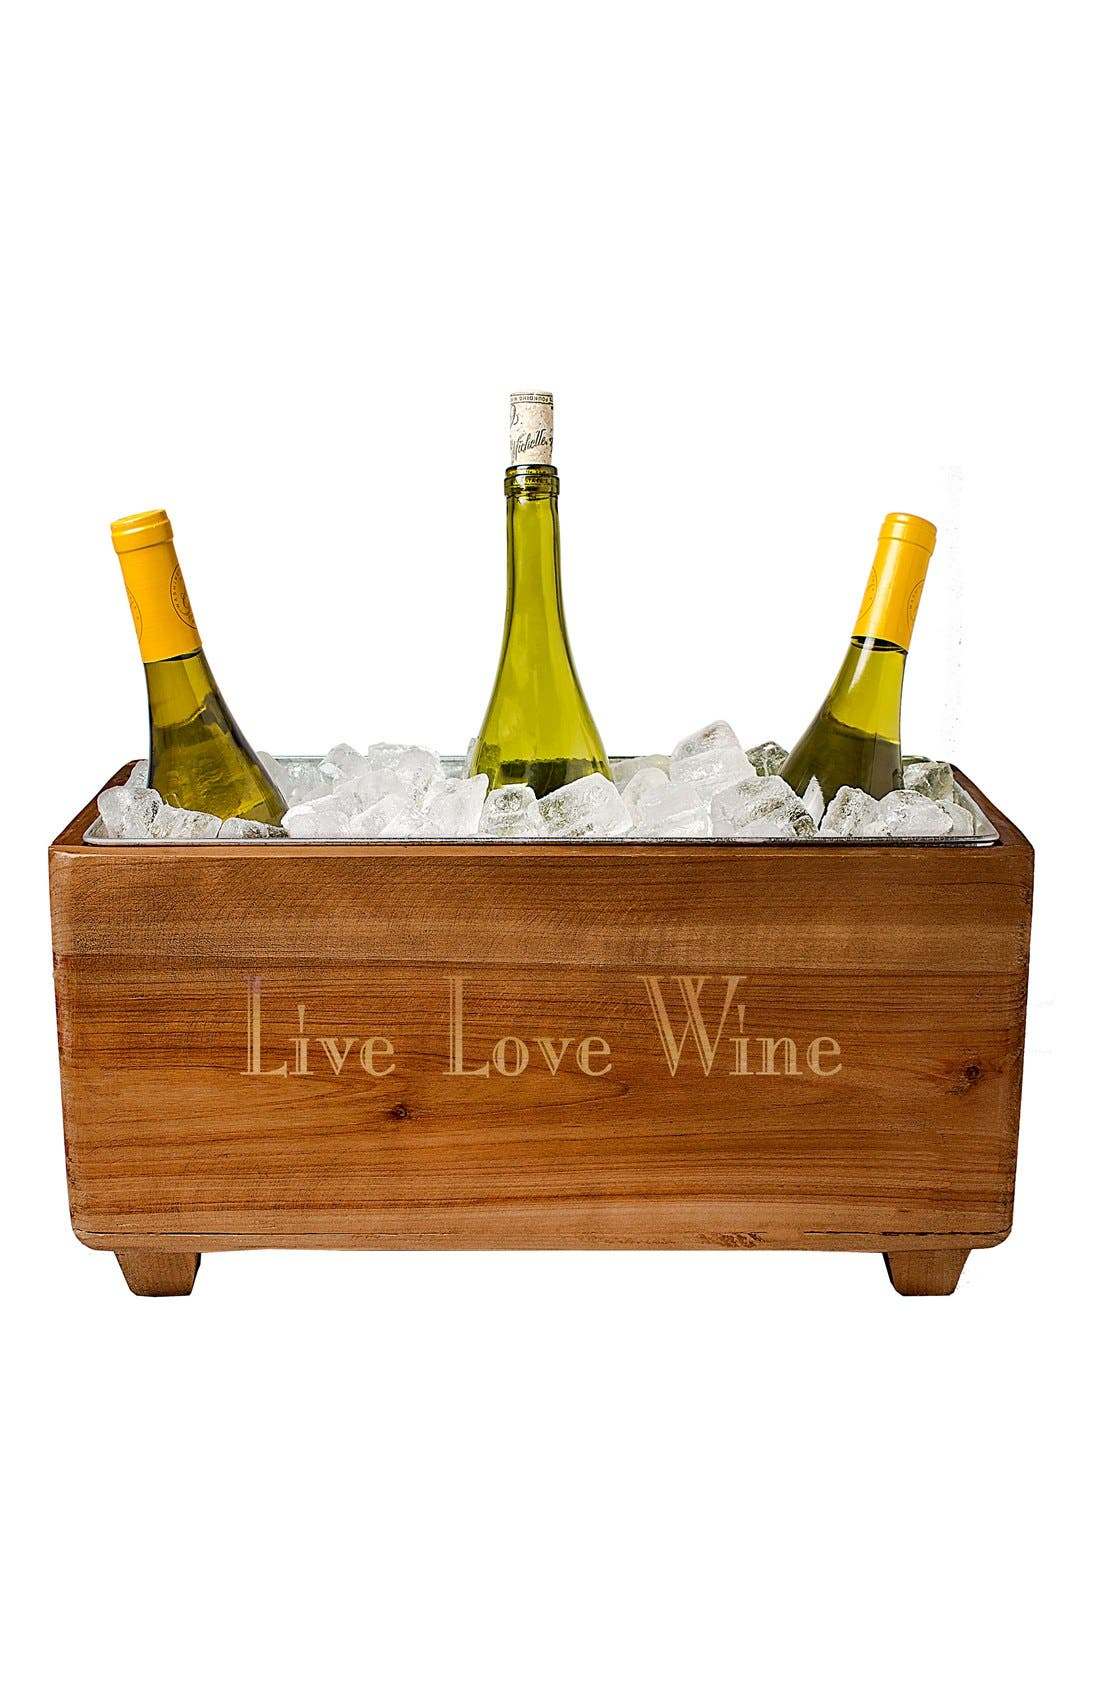 CATHY'S CONCEPTS Live Love Wine Wooden Wine Trough